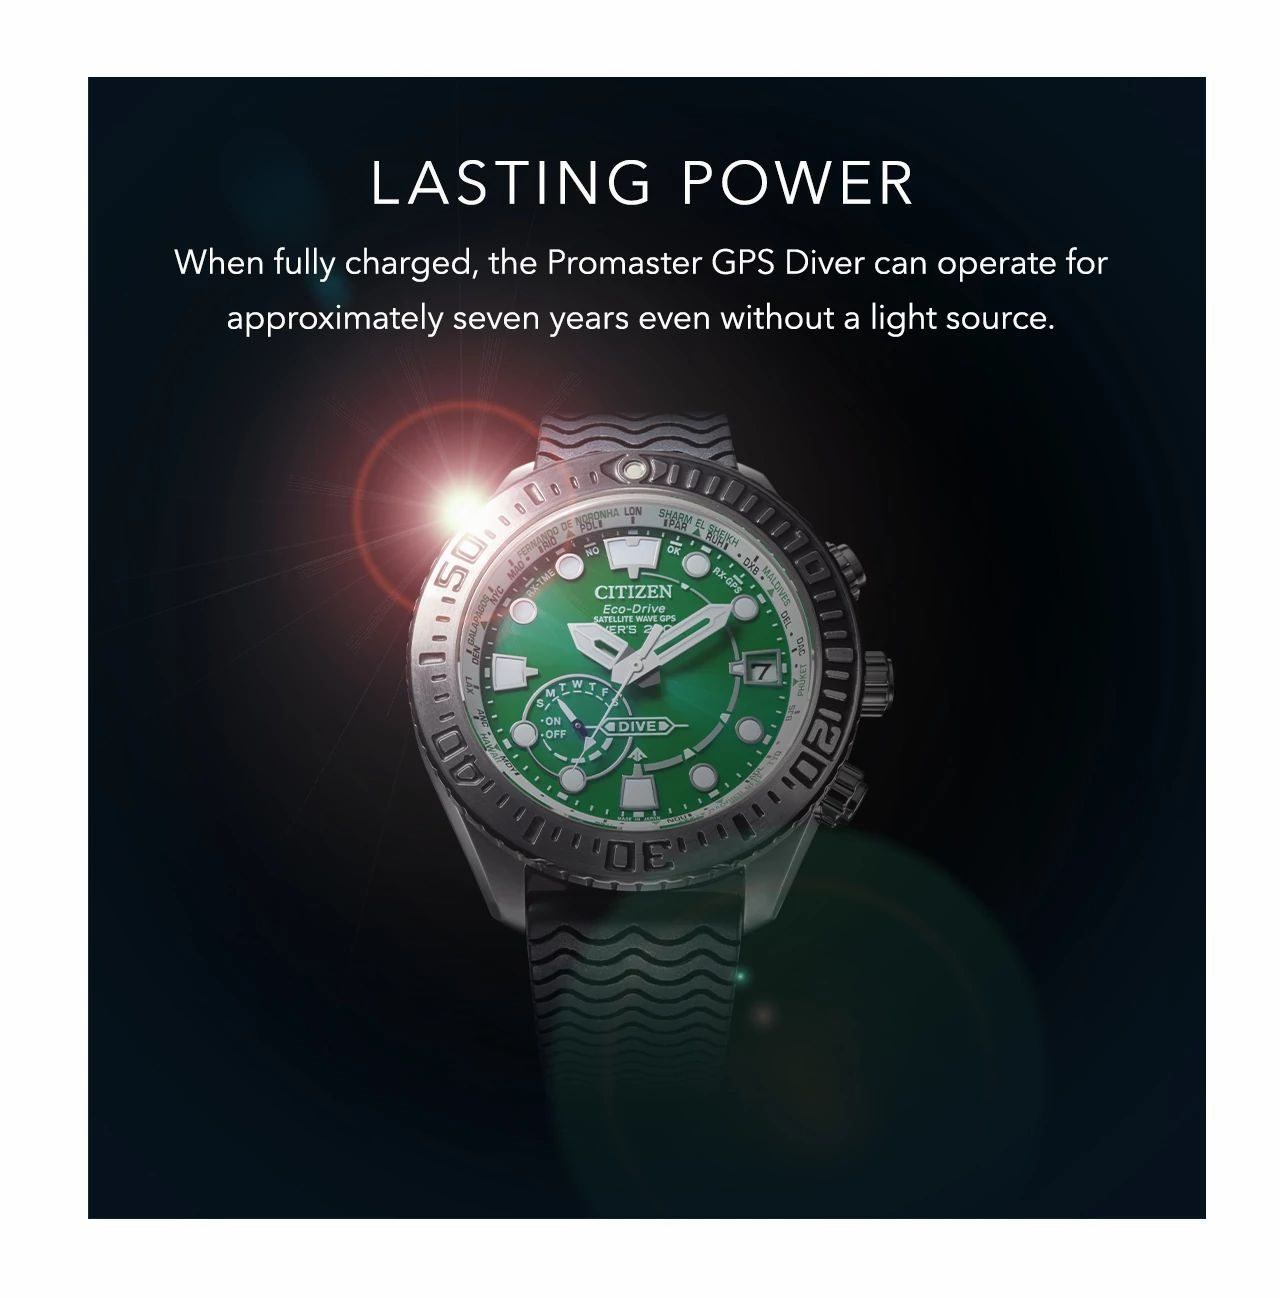 Lasting power: When fully charged, the Promaster GPS Diver can operate for approximately seven years even without a light source.